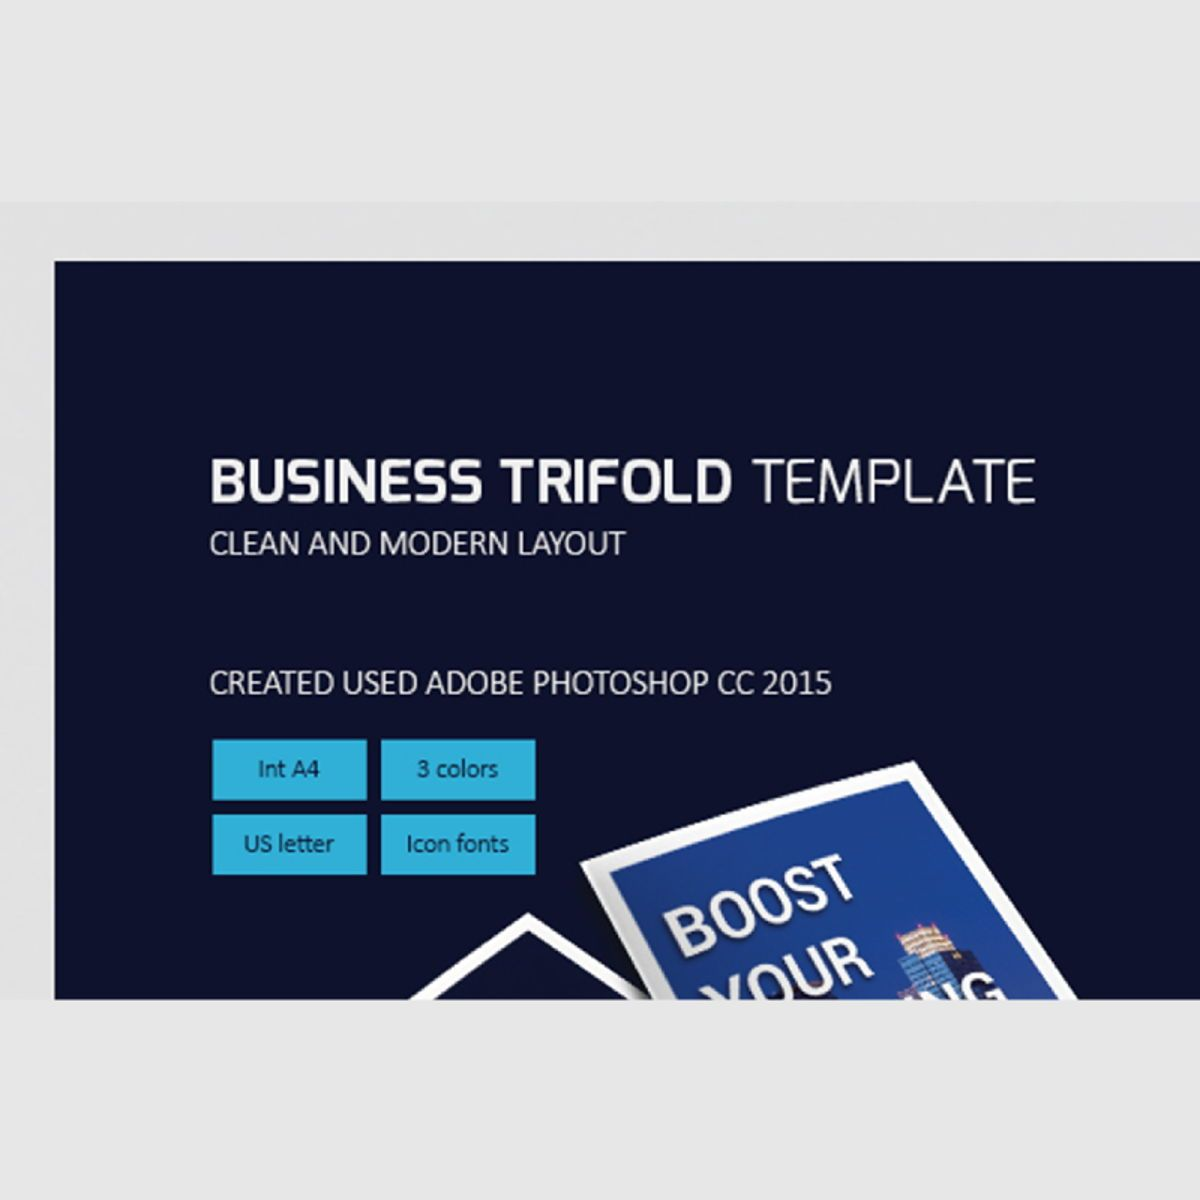 Business Company Trifold Photoshop Template, 08448, ビジネス — PoweredTemplate.com